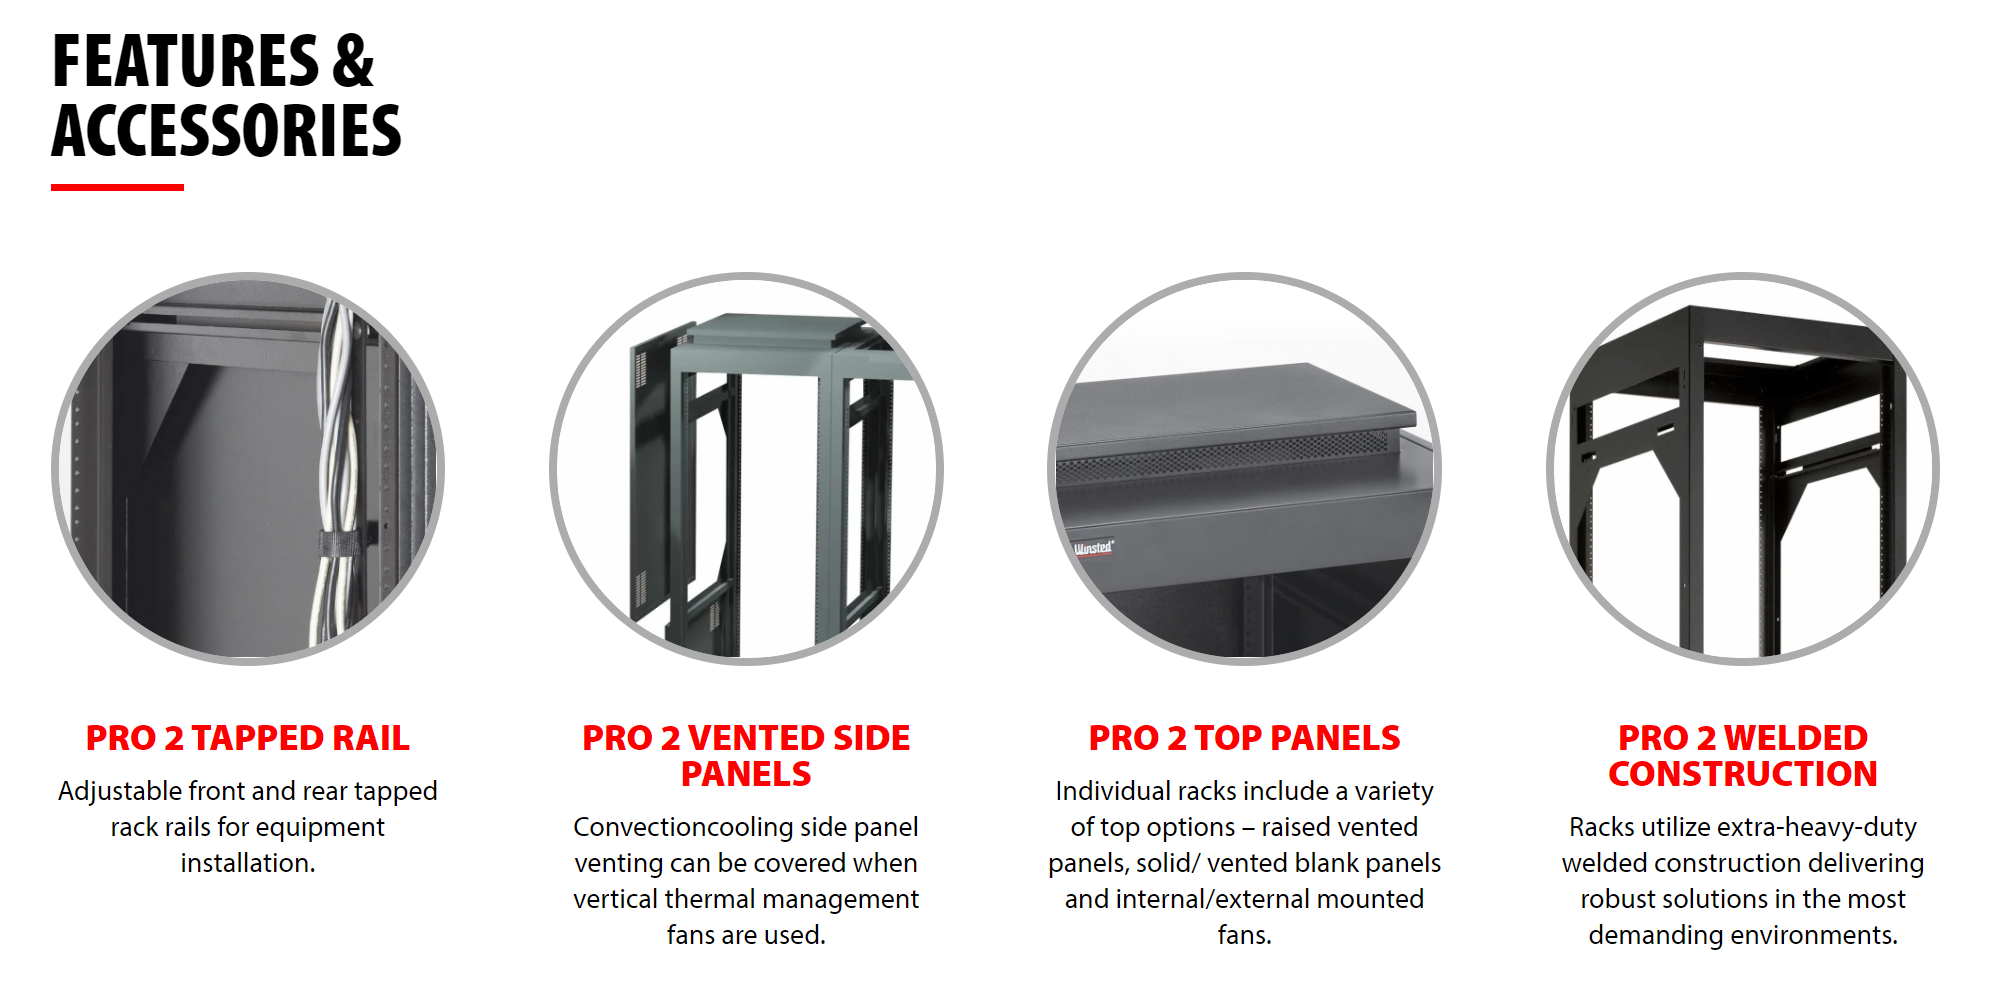 Winsted Pro Series II Equipment Racks features and accessories